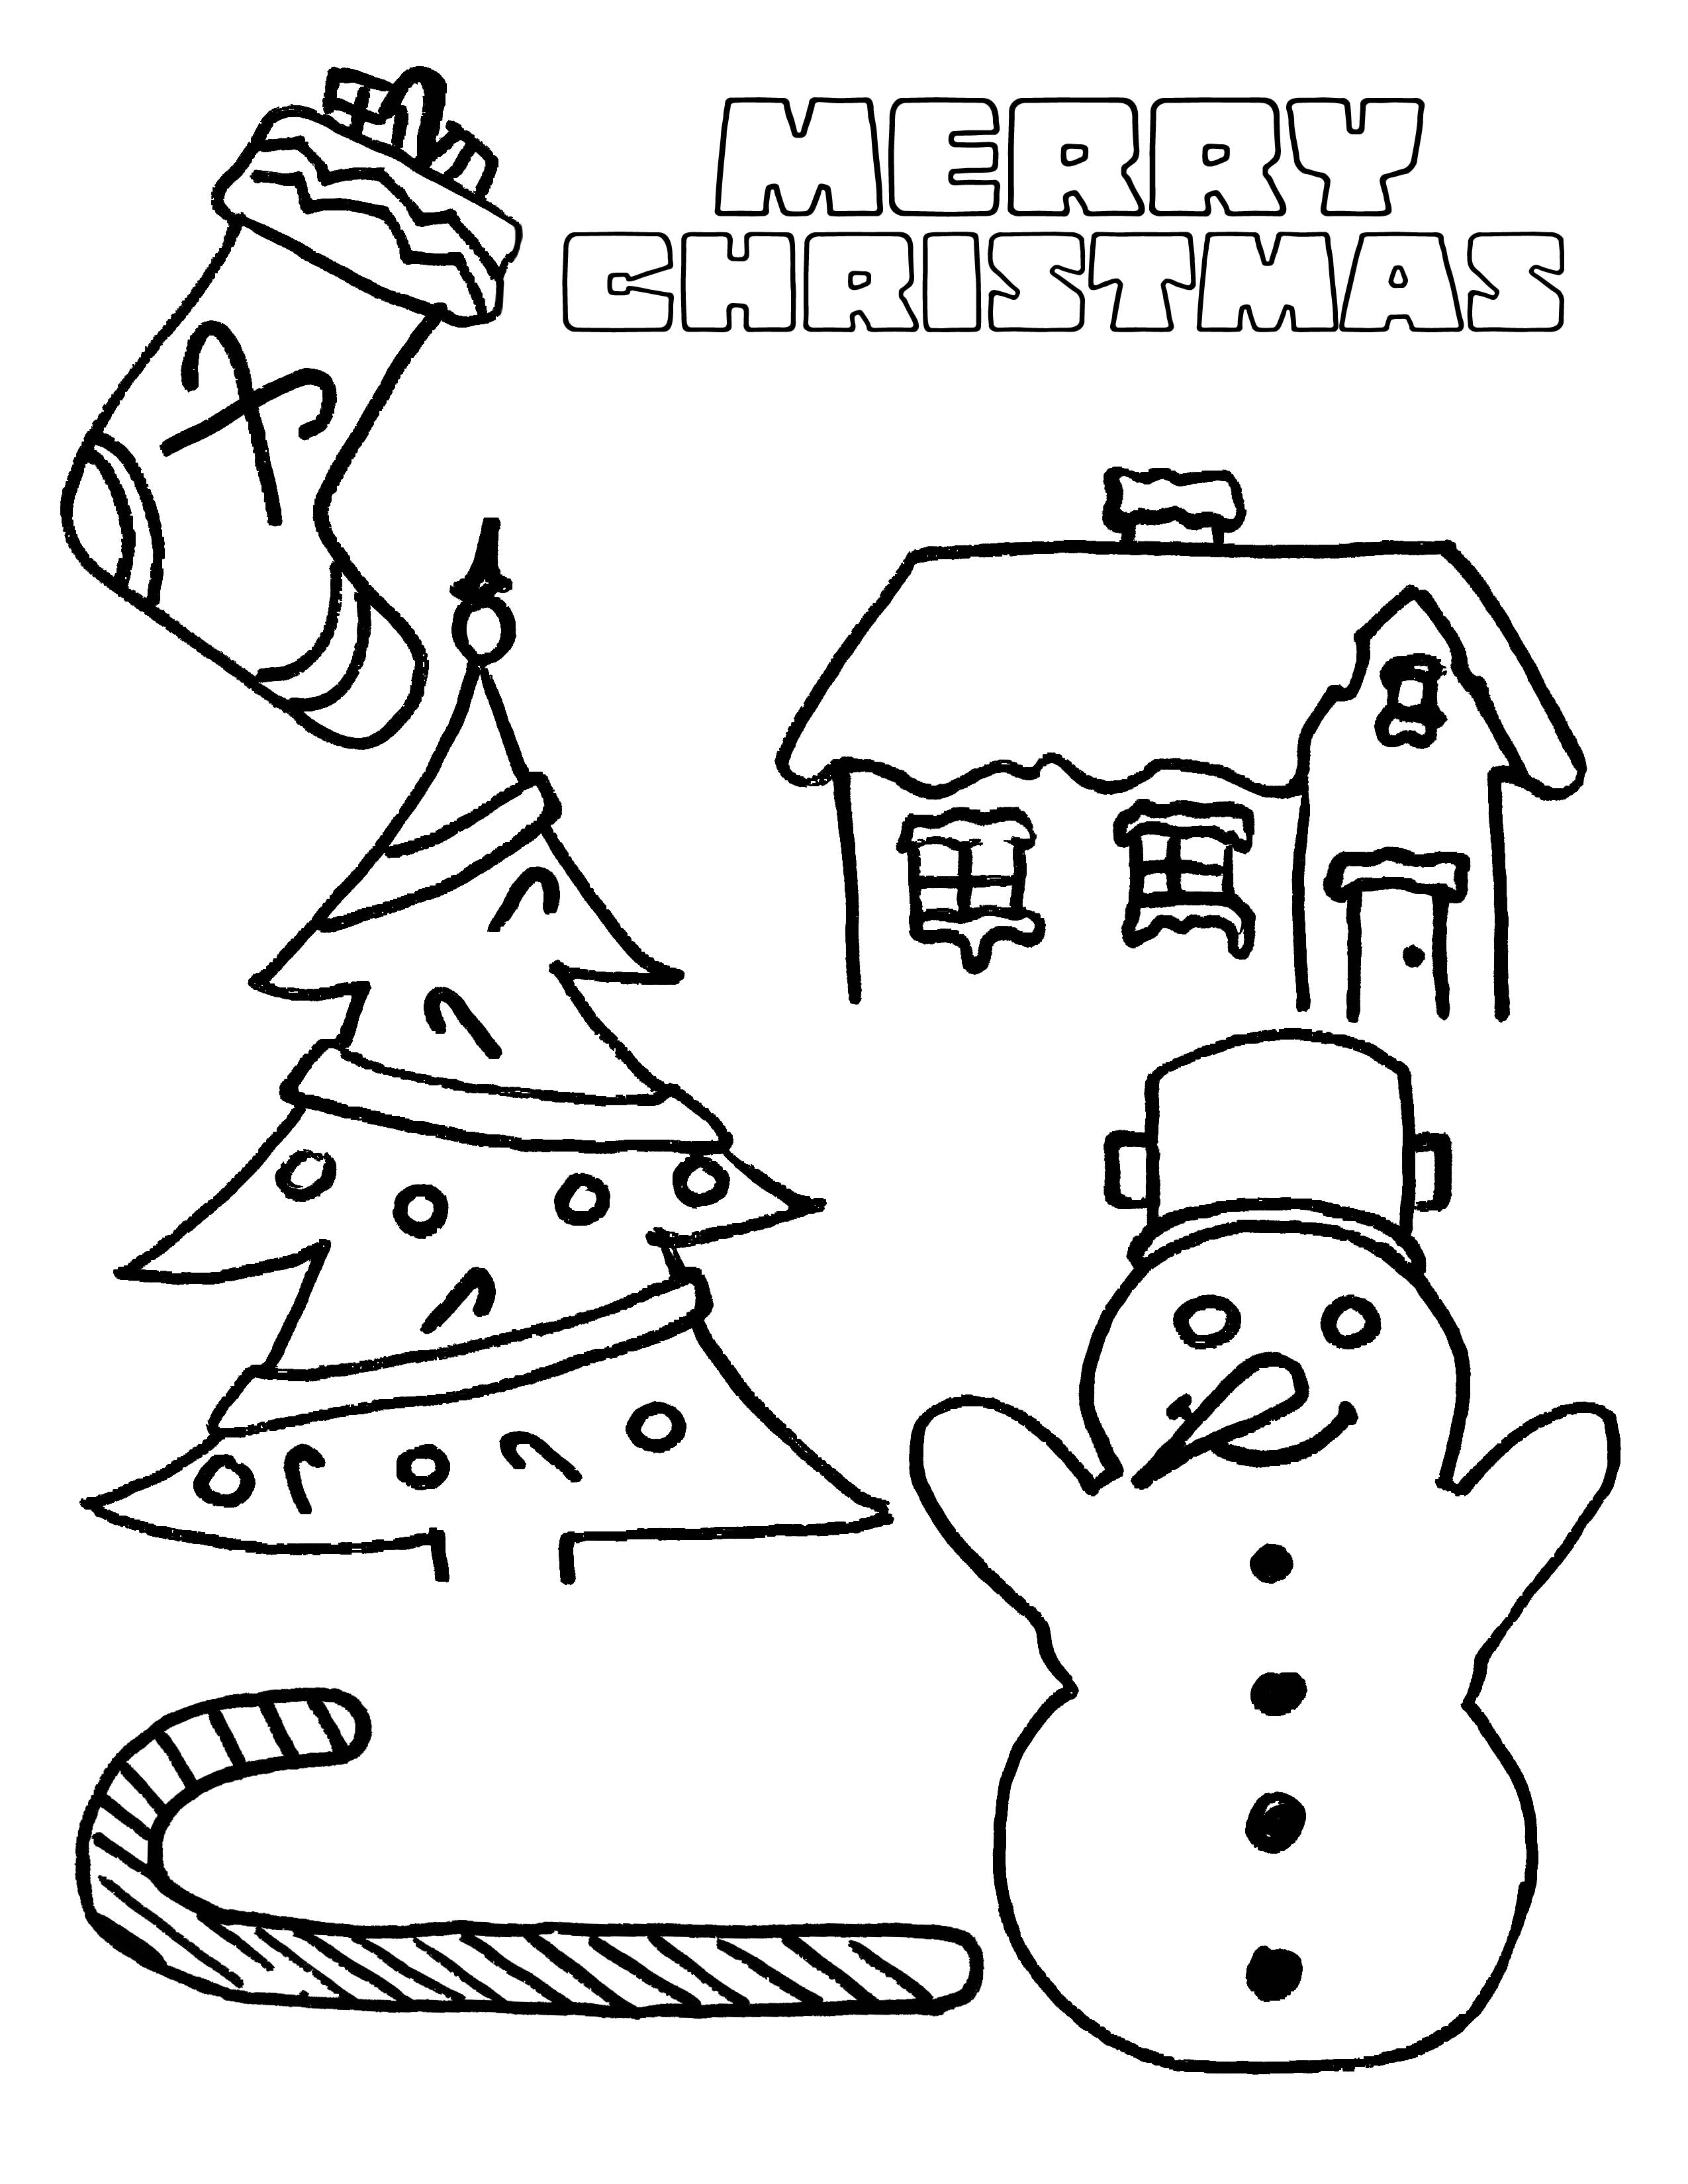 Christmas Coloring Pages To Print Free Christmas Coloring Pages Christmas Coloring Pages For Kids